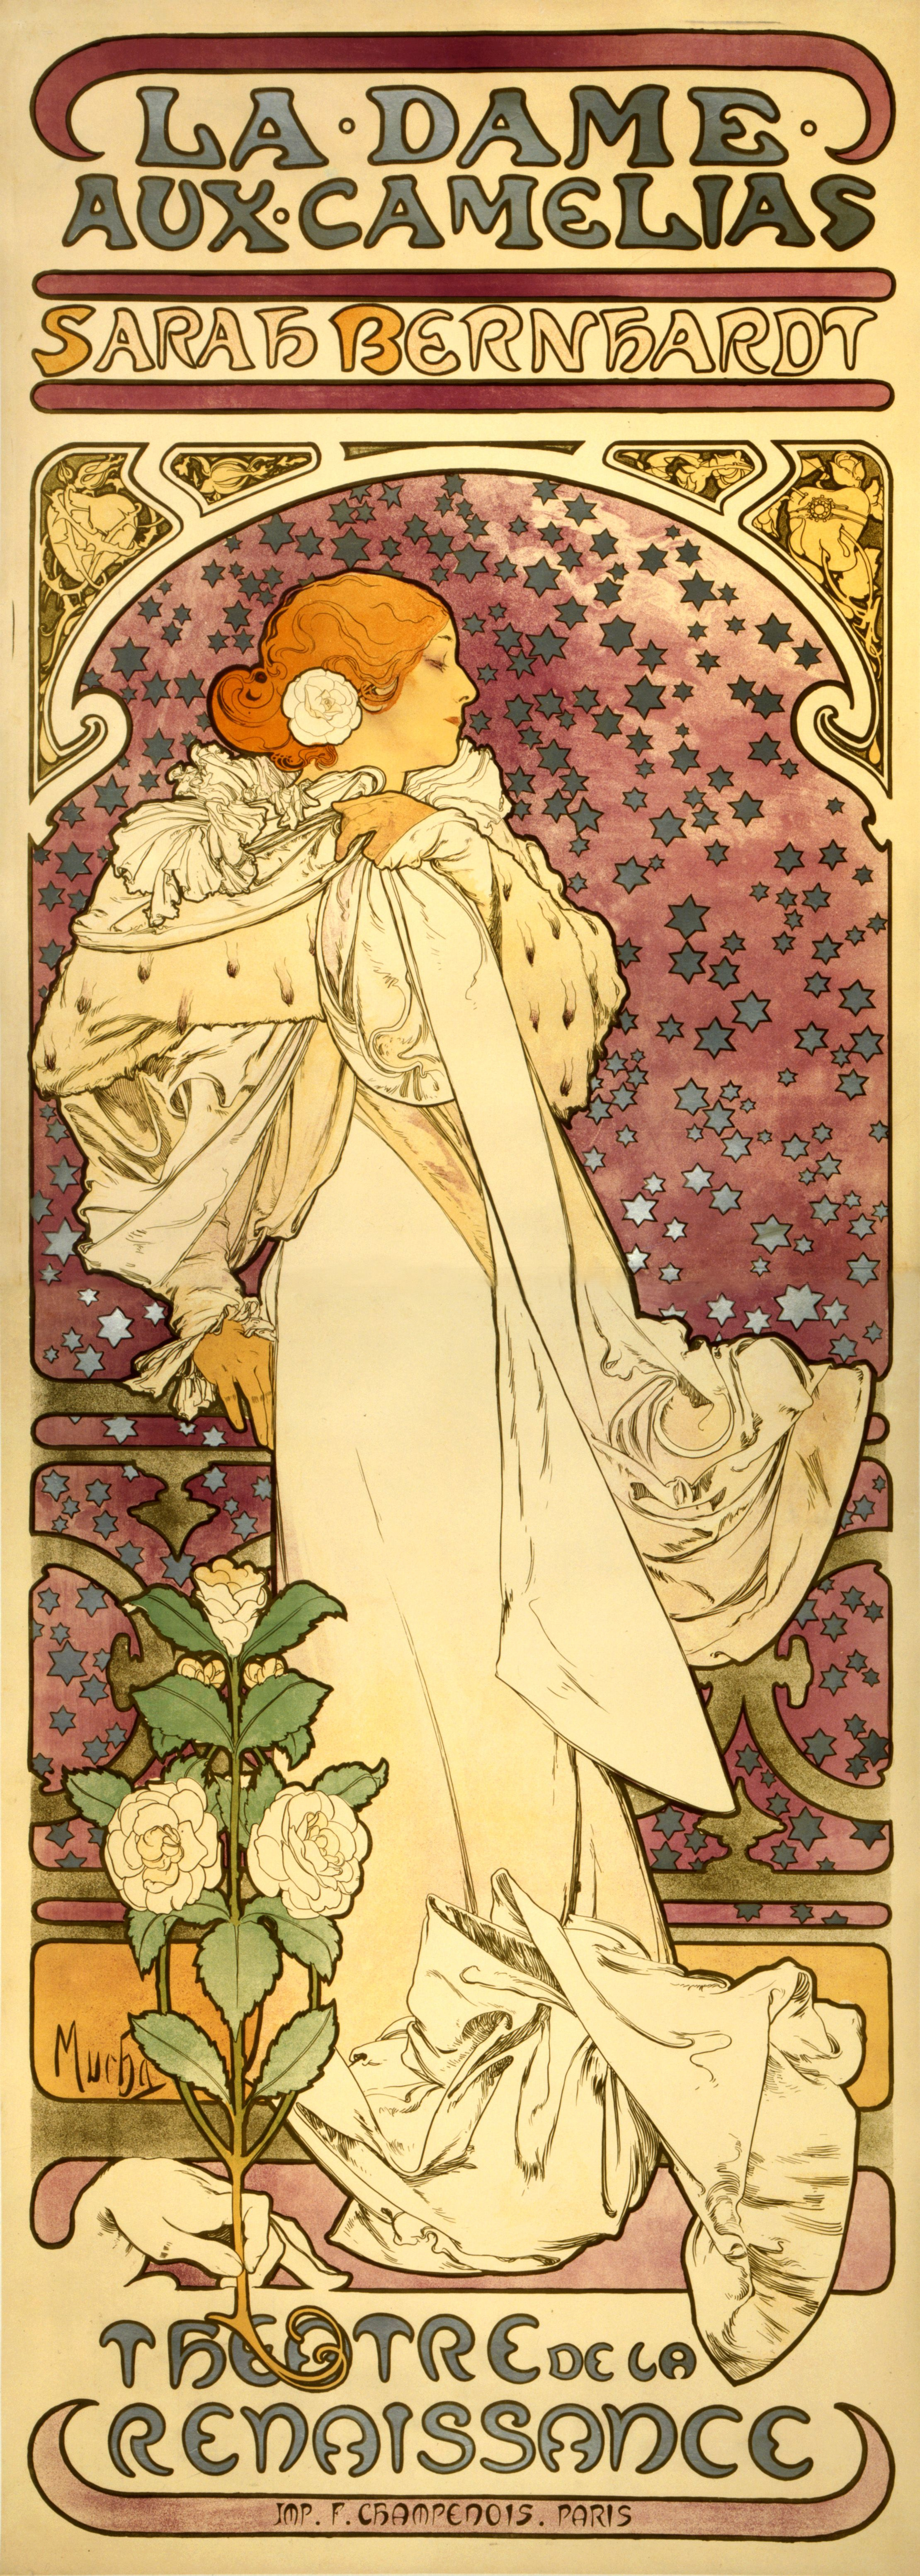 Alphonse Mucha. The lady of the camellias. Promotional poster for Sarah Bernhardt